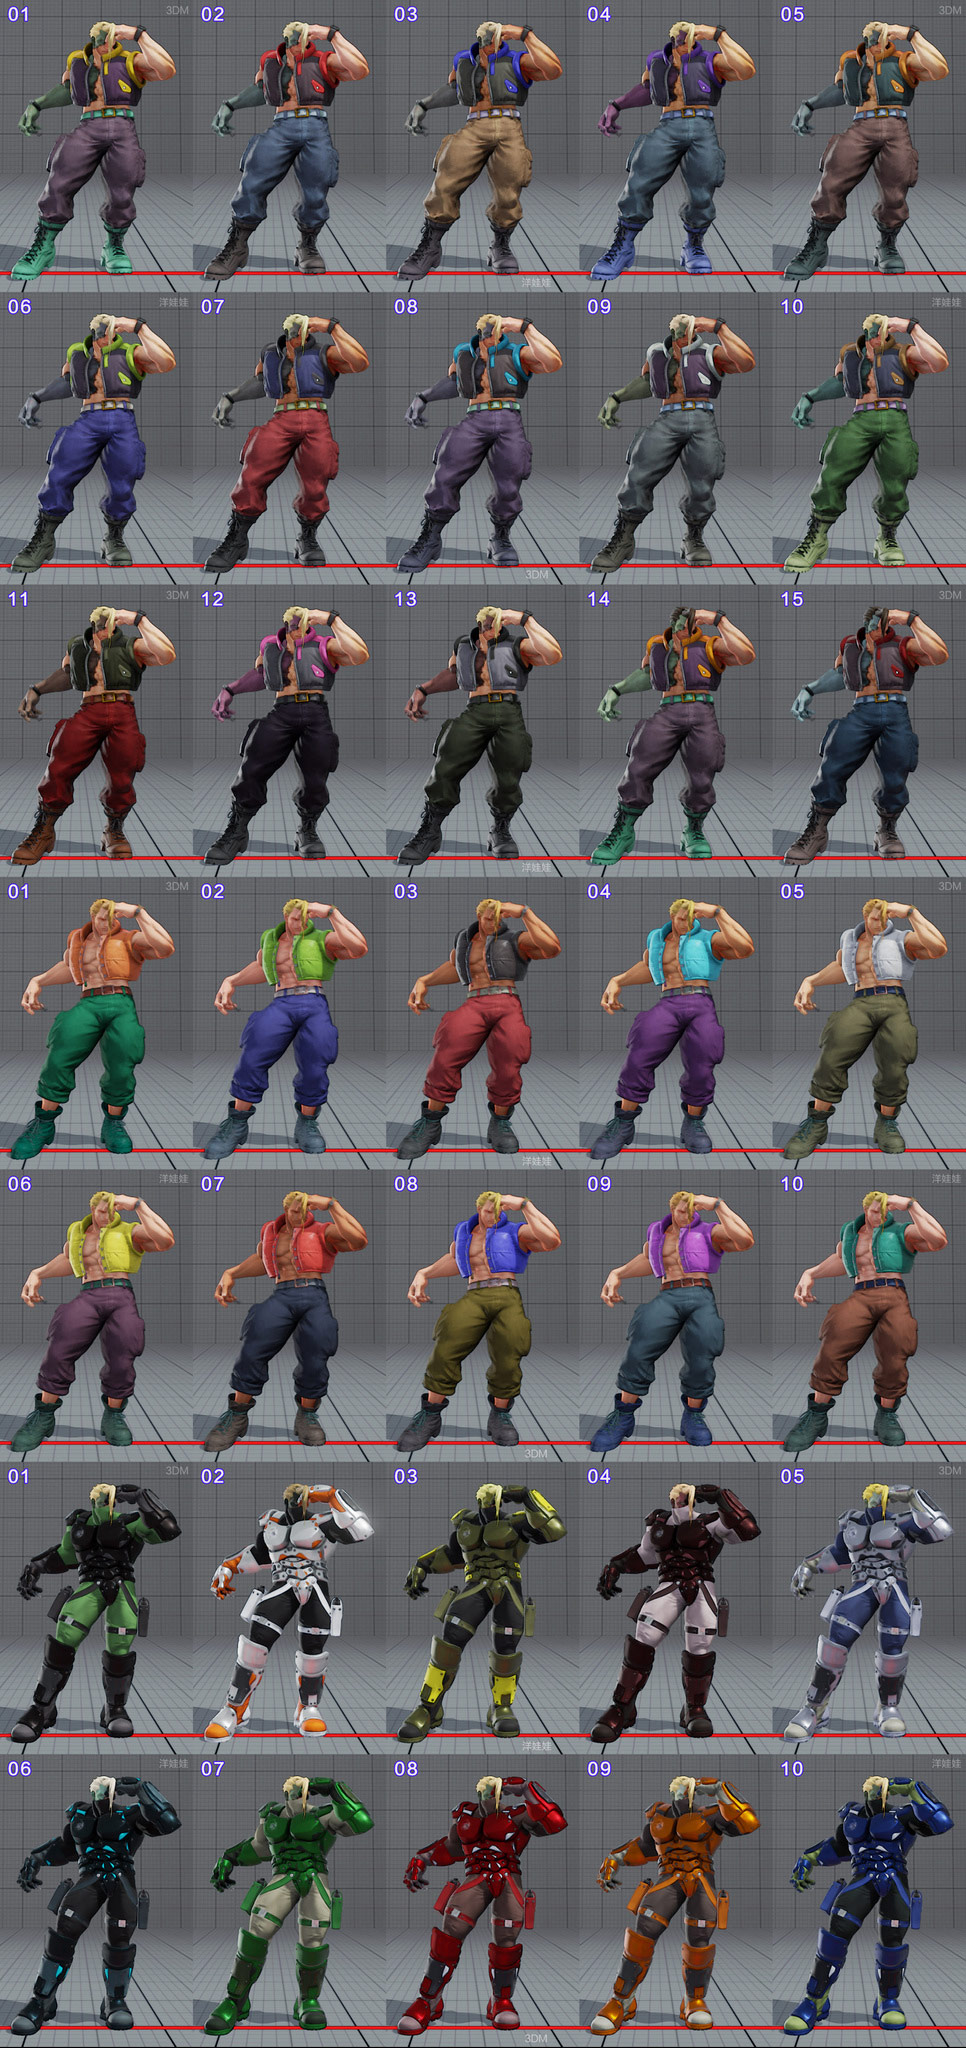 All colors for all current costumes in Street Fighter 5 12 out of 18 image gallery